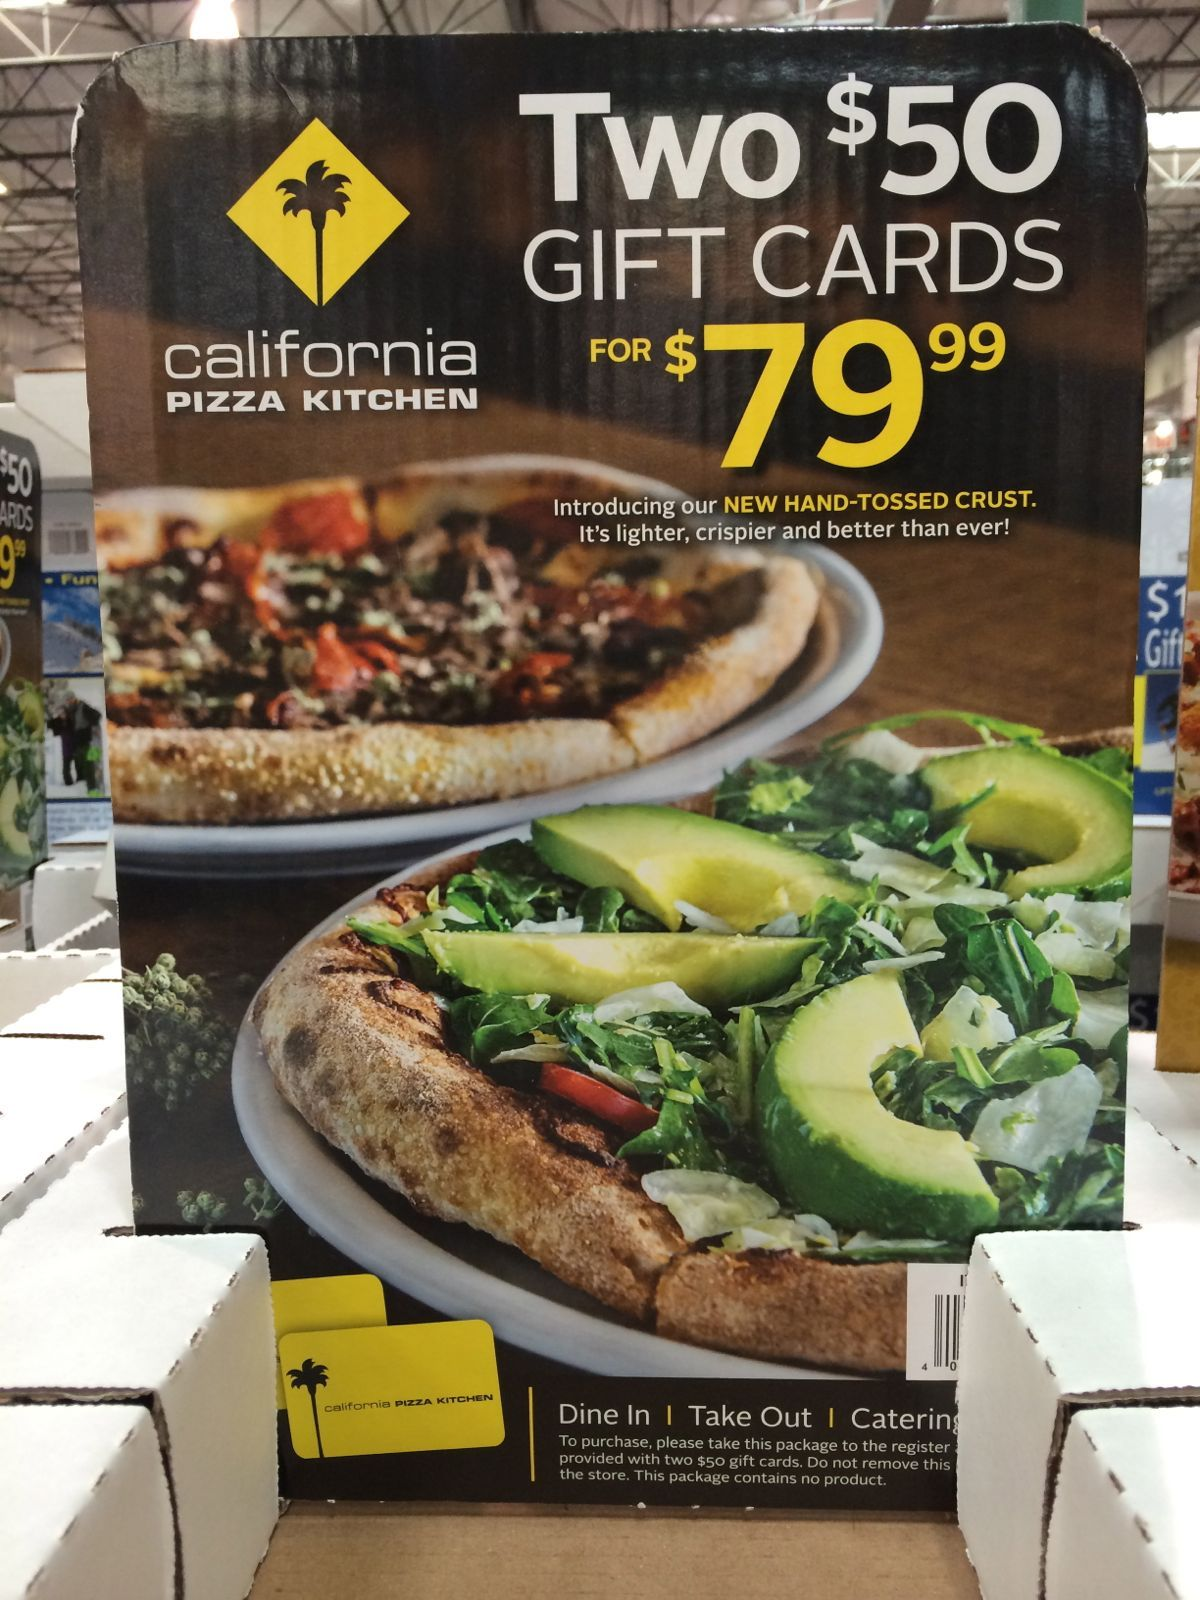 california pizza kitchen t cards at costco 2 x 50 cards for